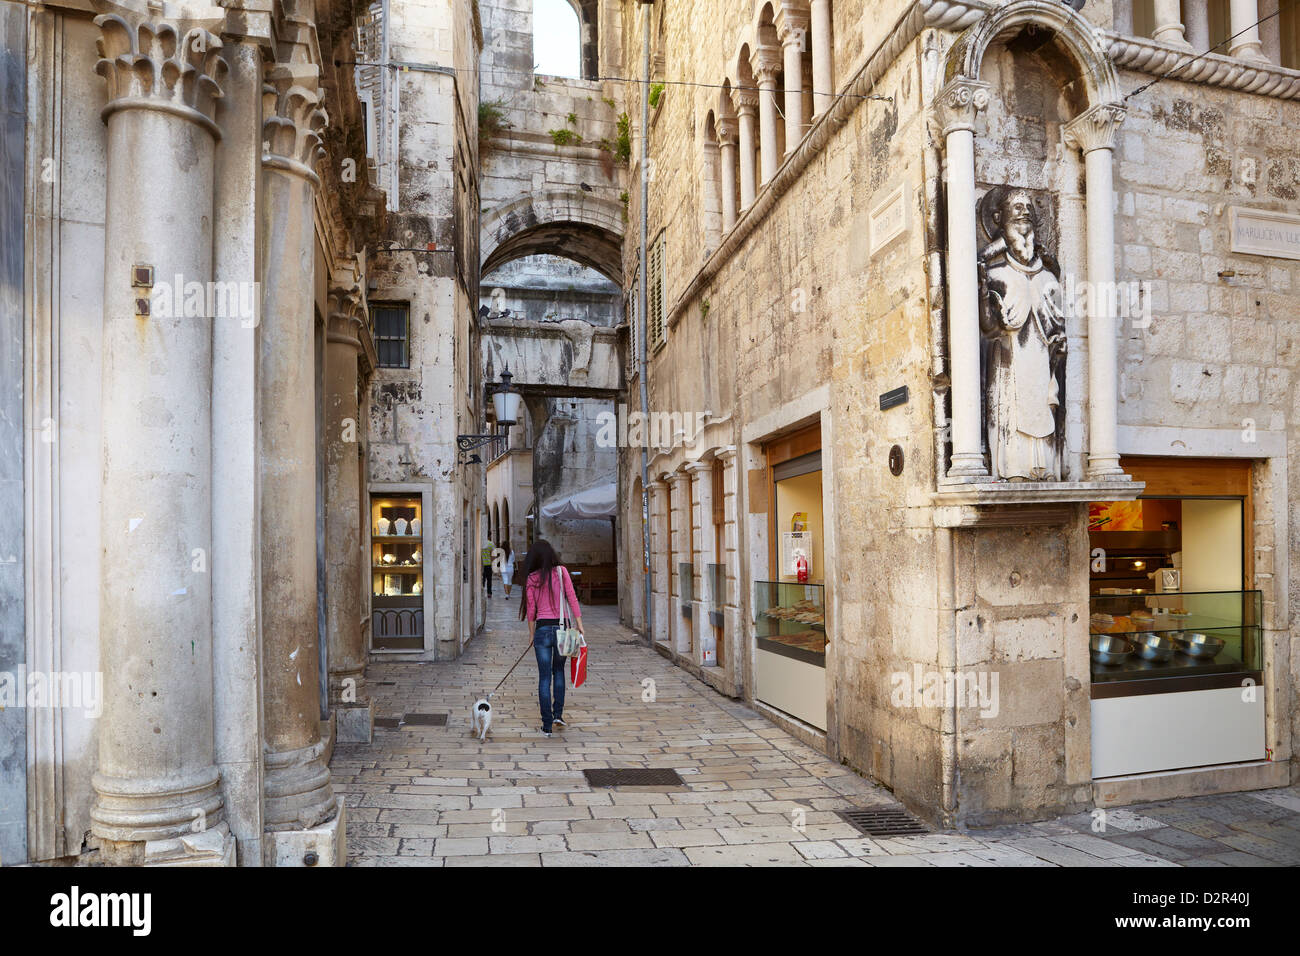 Split, Croatia, small street of the Old Town in Split, Dalmatia destination in Croatia - Stock Image